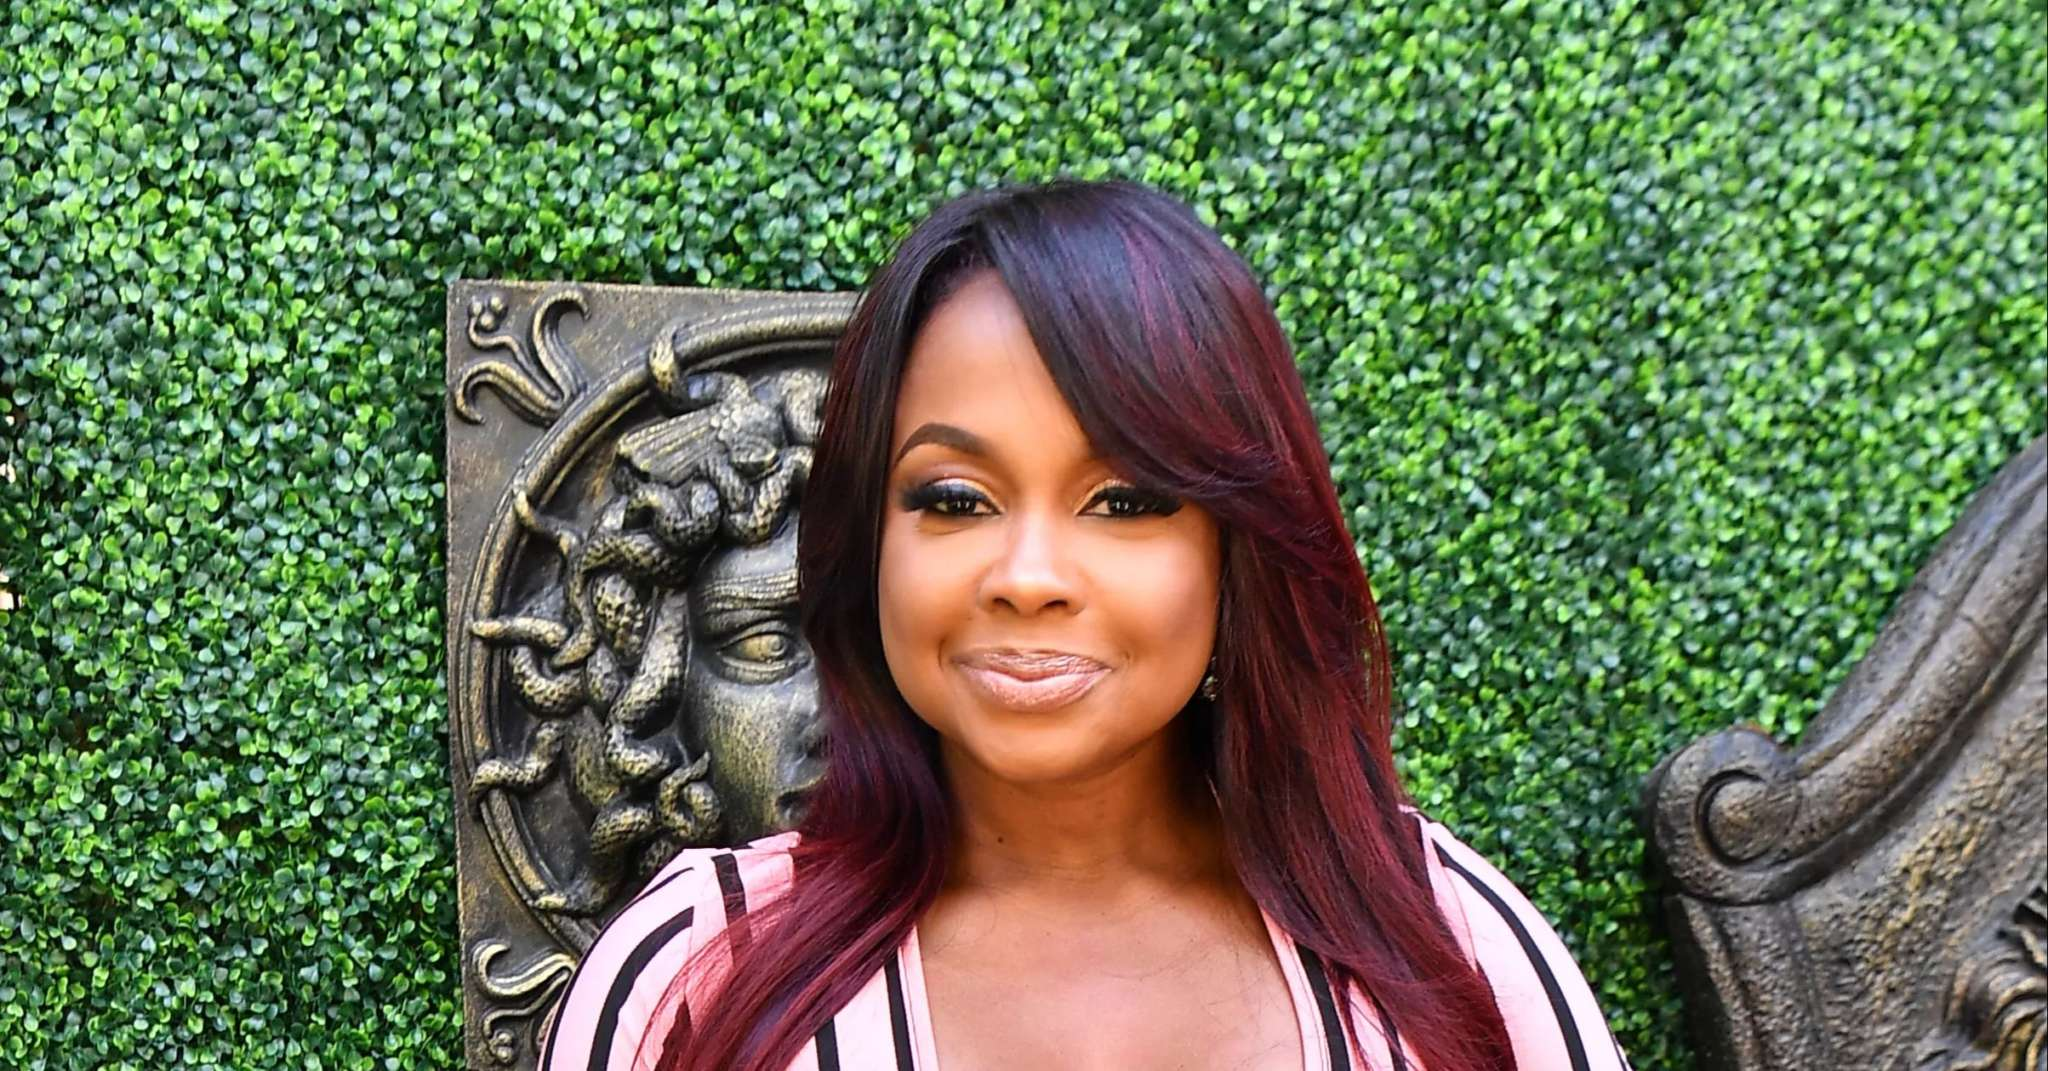 Phaedra Parks' Fans Admire Her As A Mother - See The Photo That She Shares On Her Social Media Account